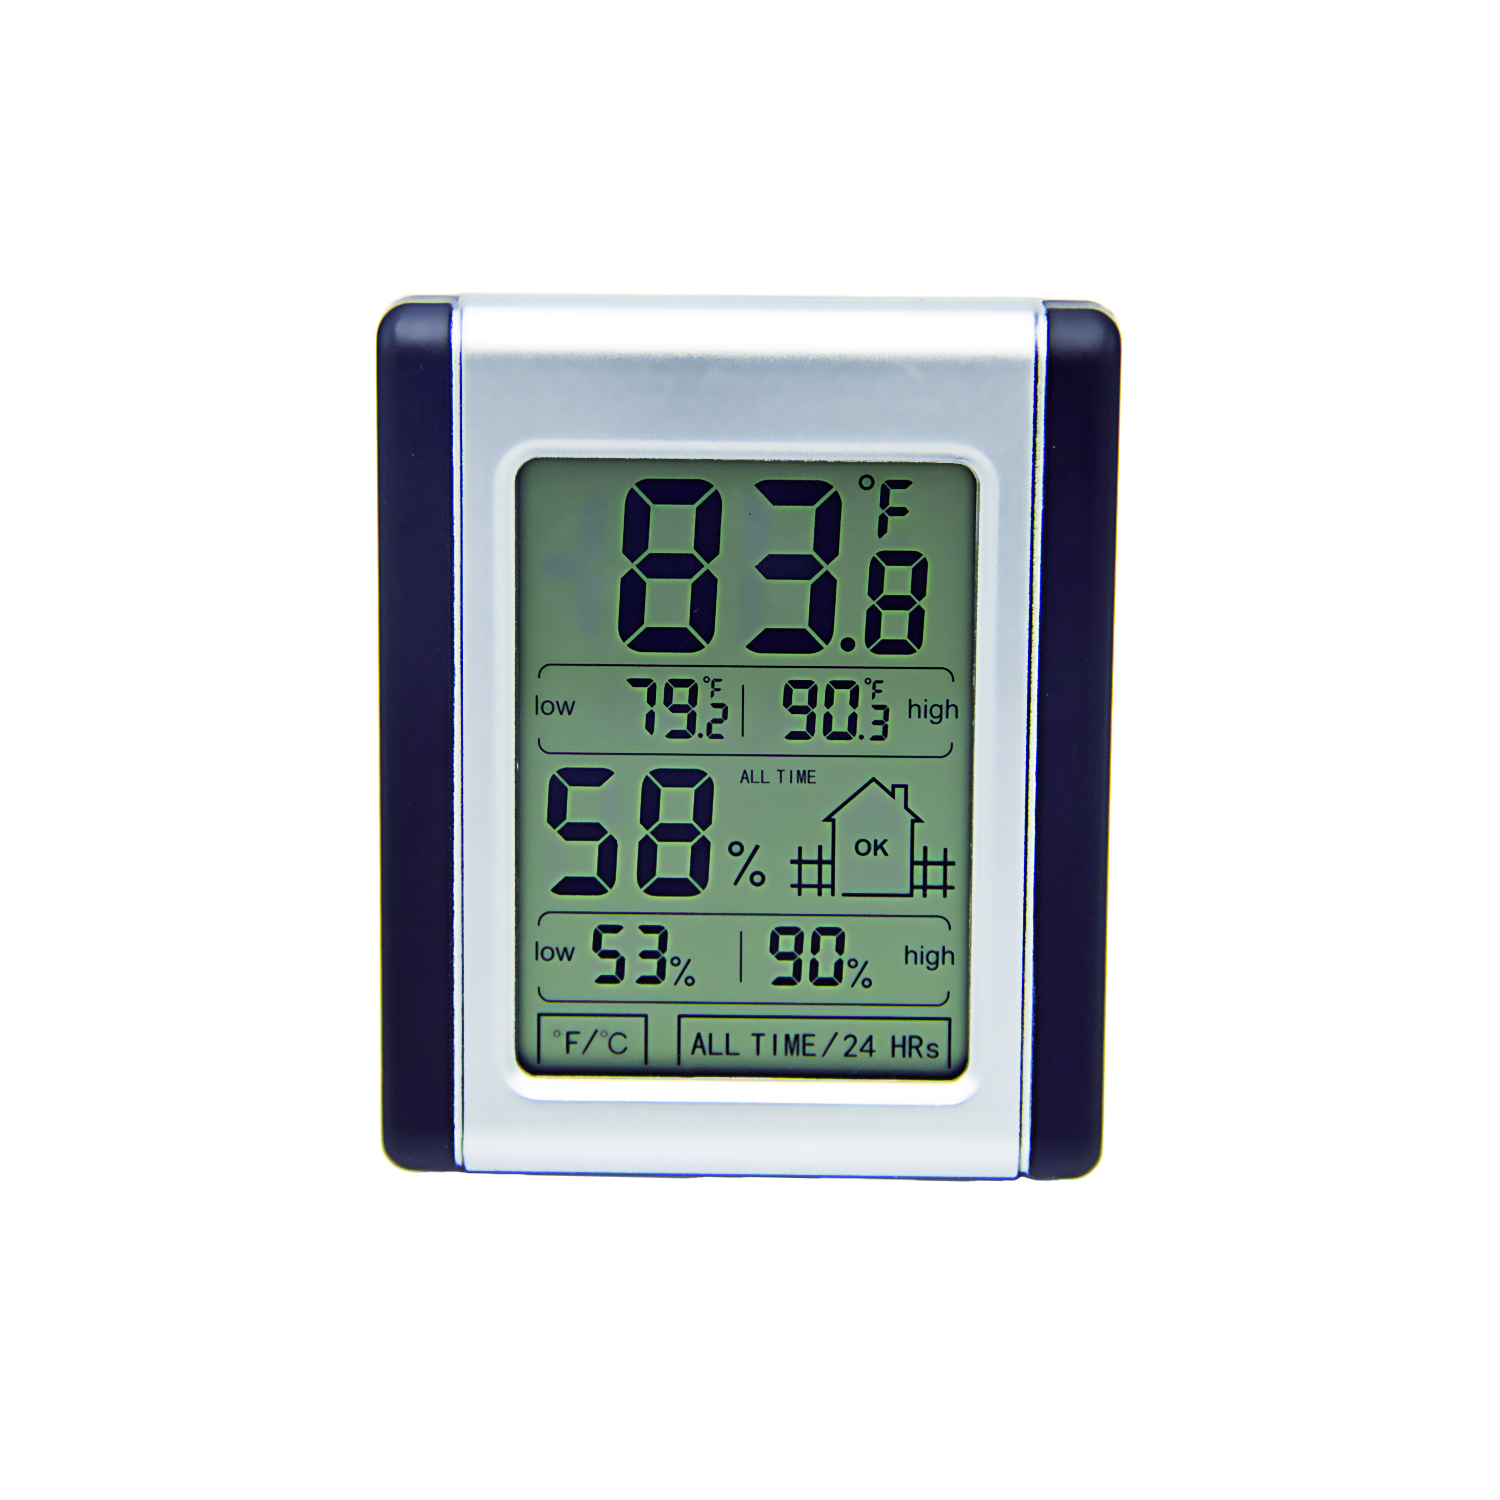 Clever Design Digital Lcd Display Touchscreen Thermometer Hygrometer with Max Min Record Function